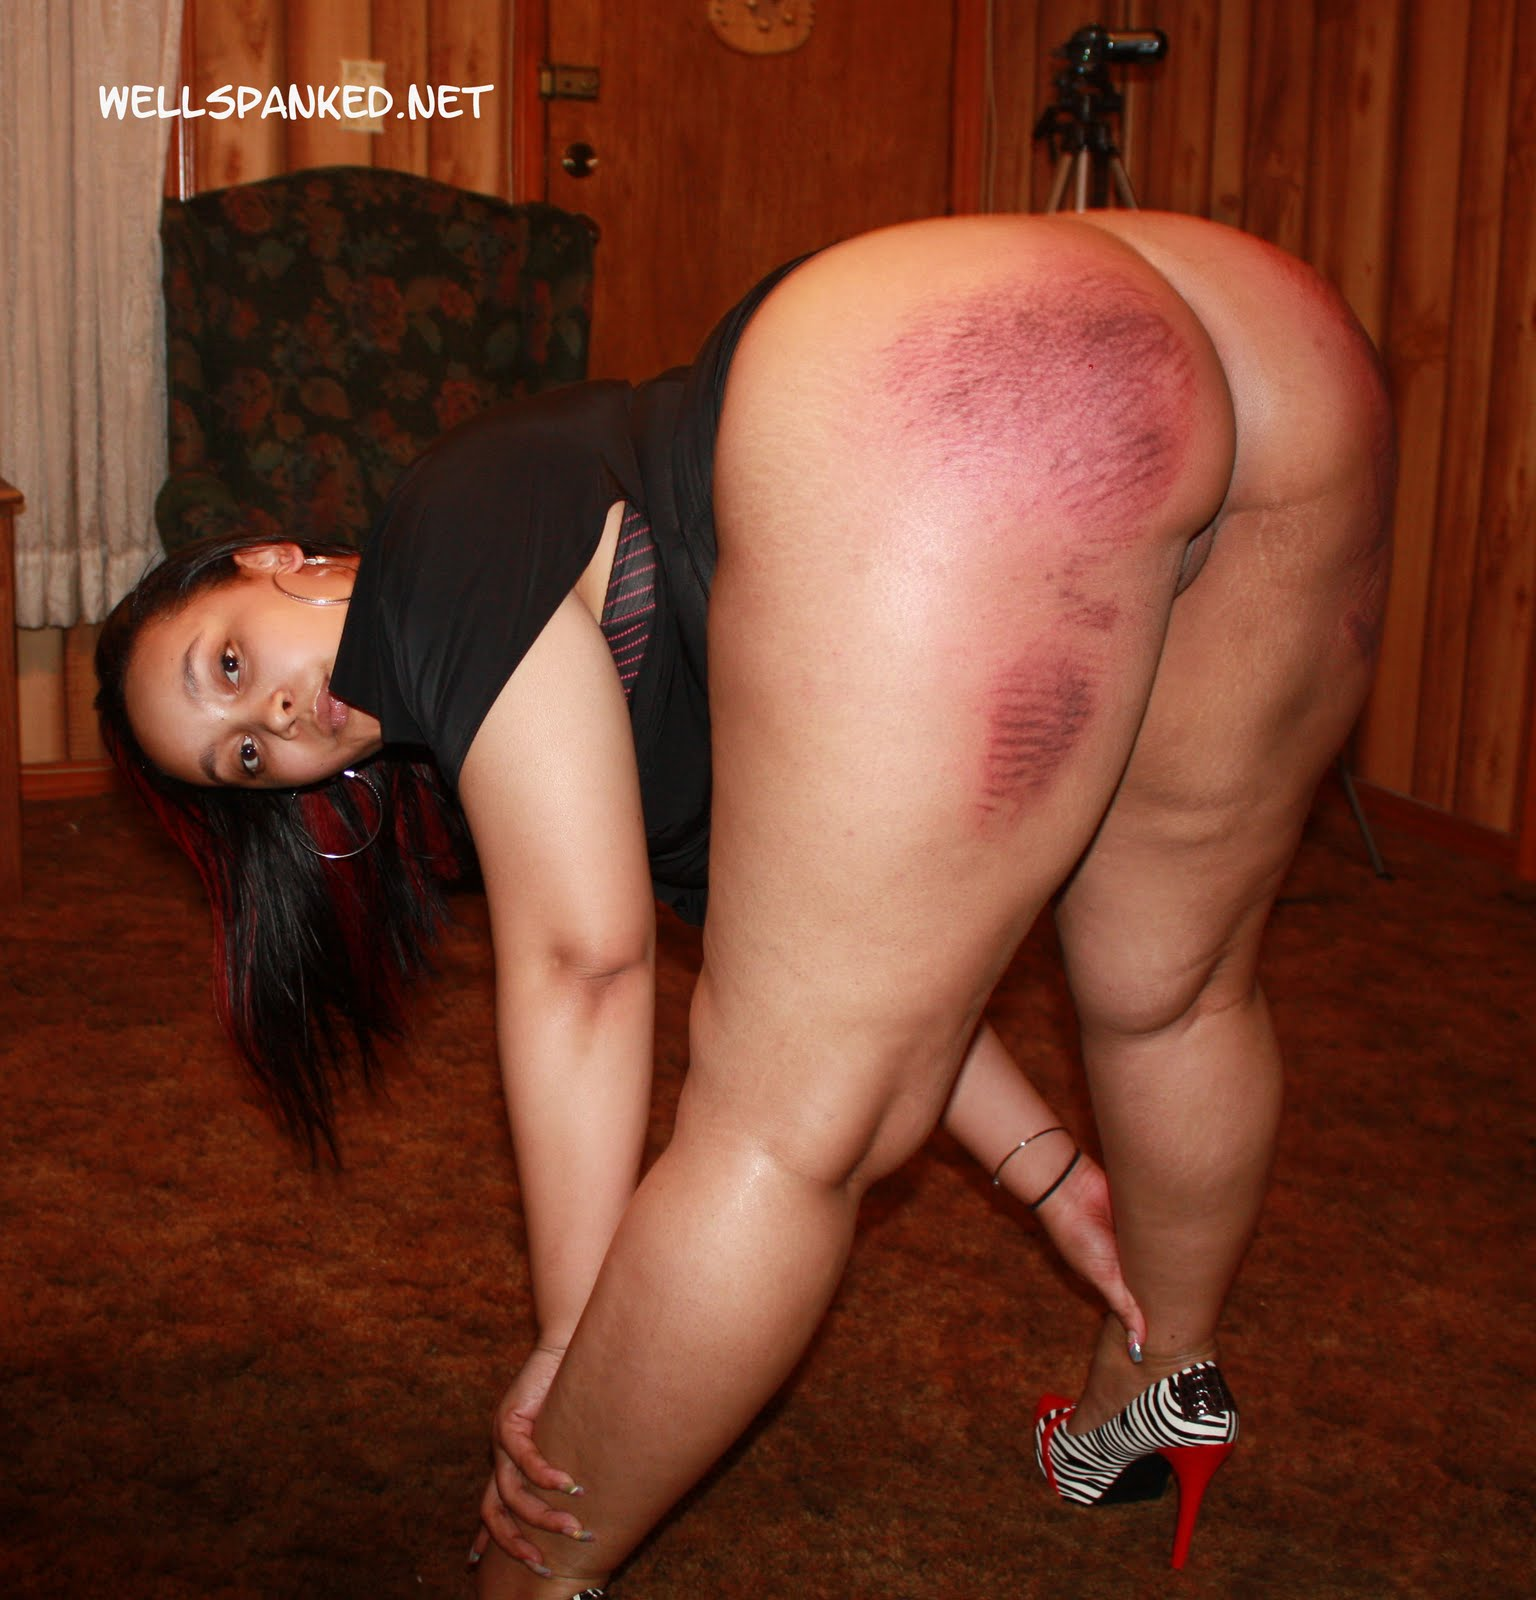 Wellspanked